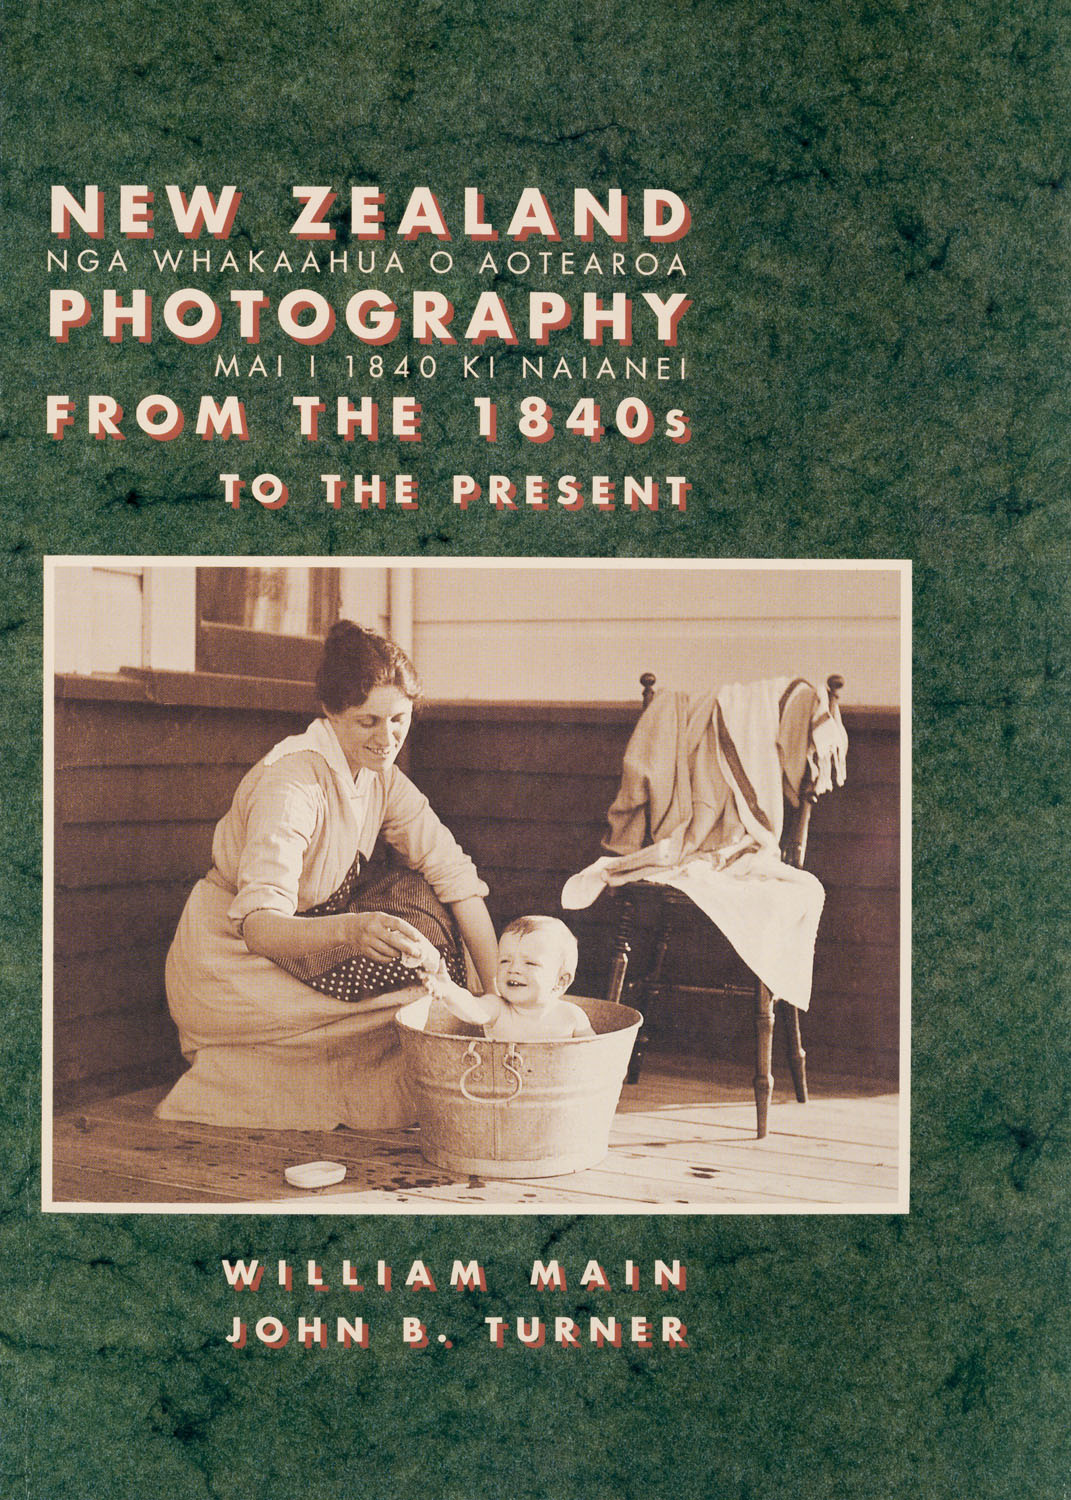 William Main and John B. Turner 'New Zealand Photography from th